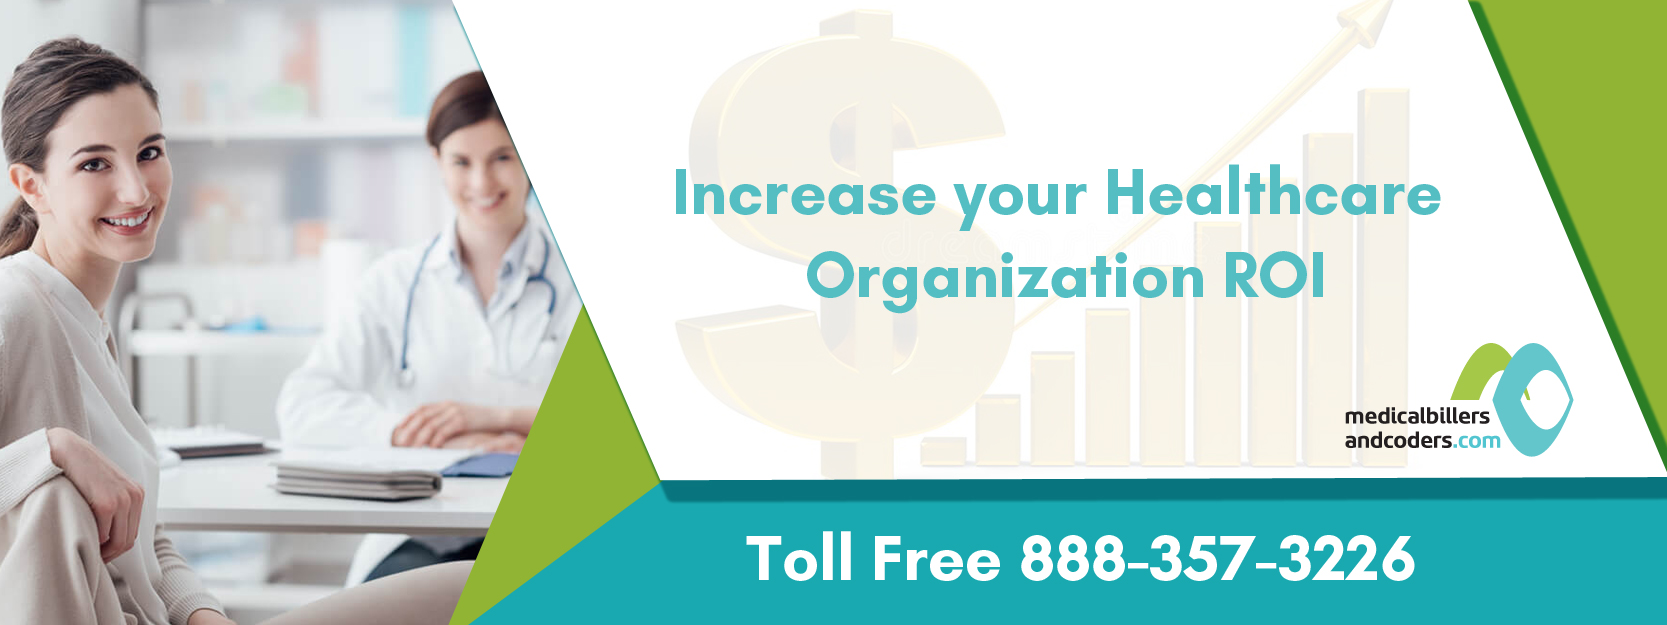 blog-increase-your-healthcare-organization-roi